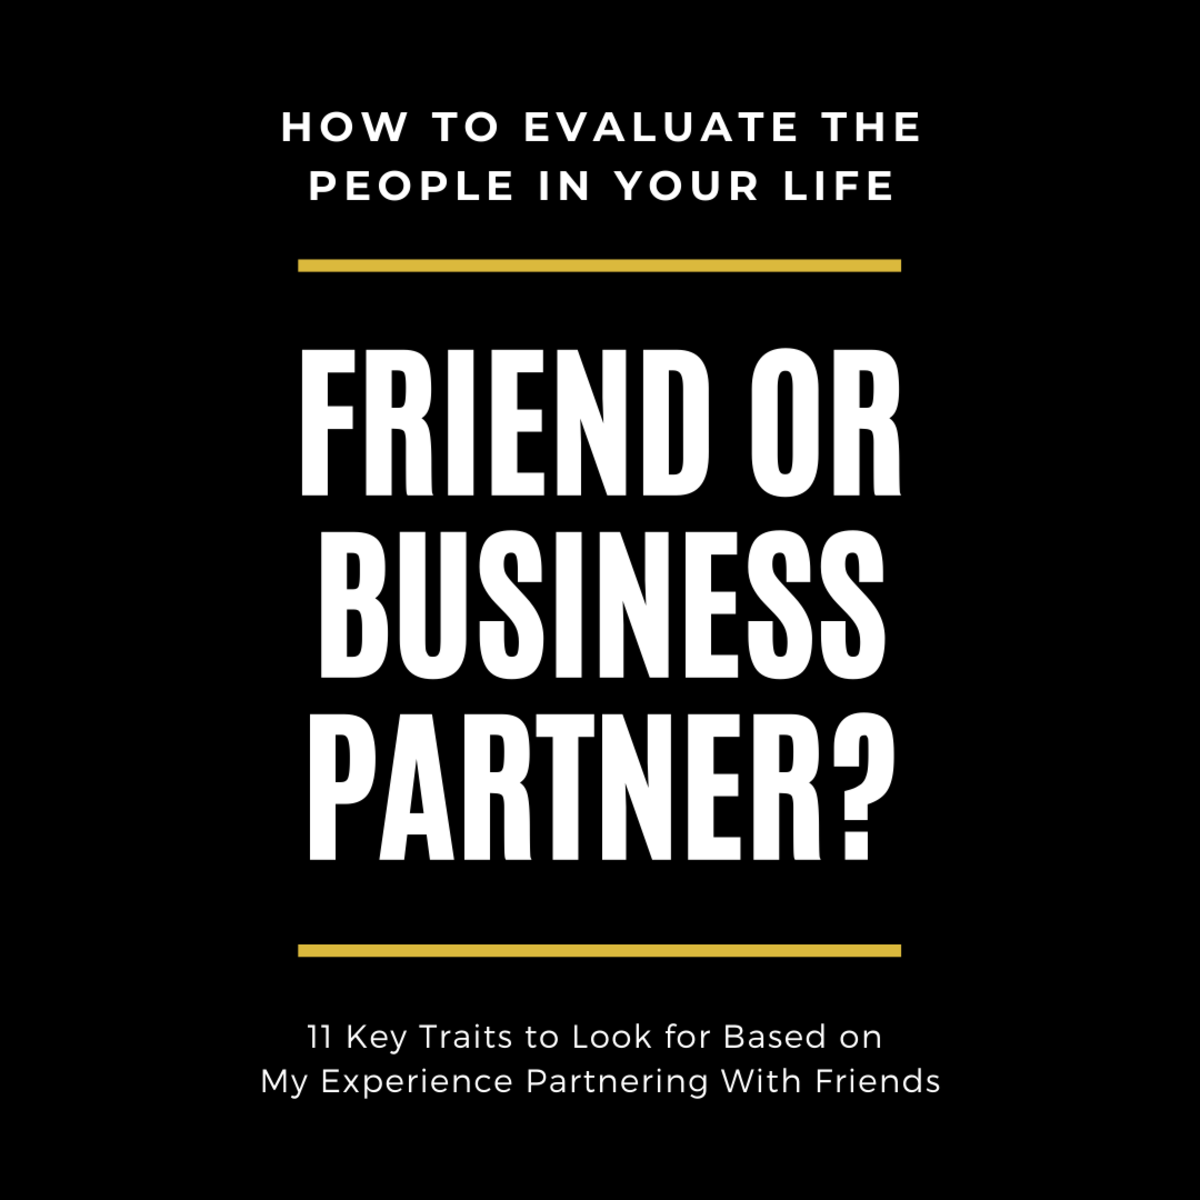 How to Choose a Good Business Partner (My Partnership Story)